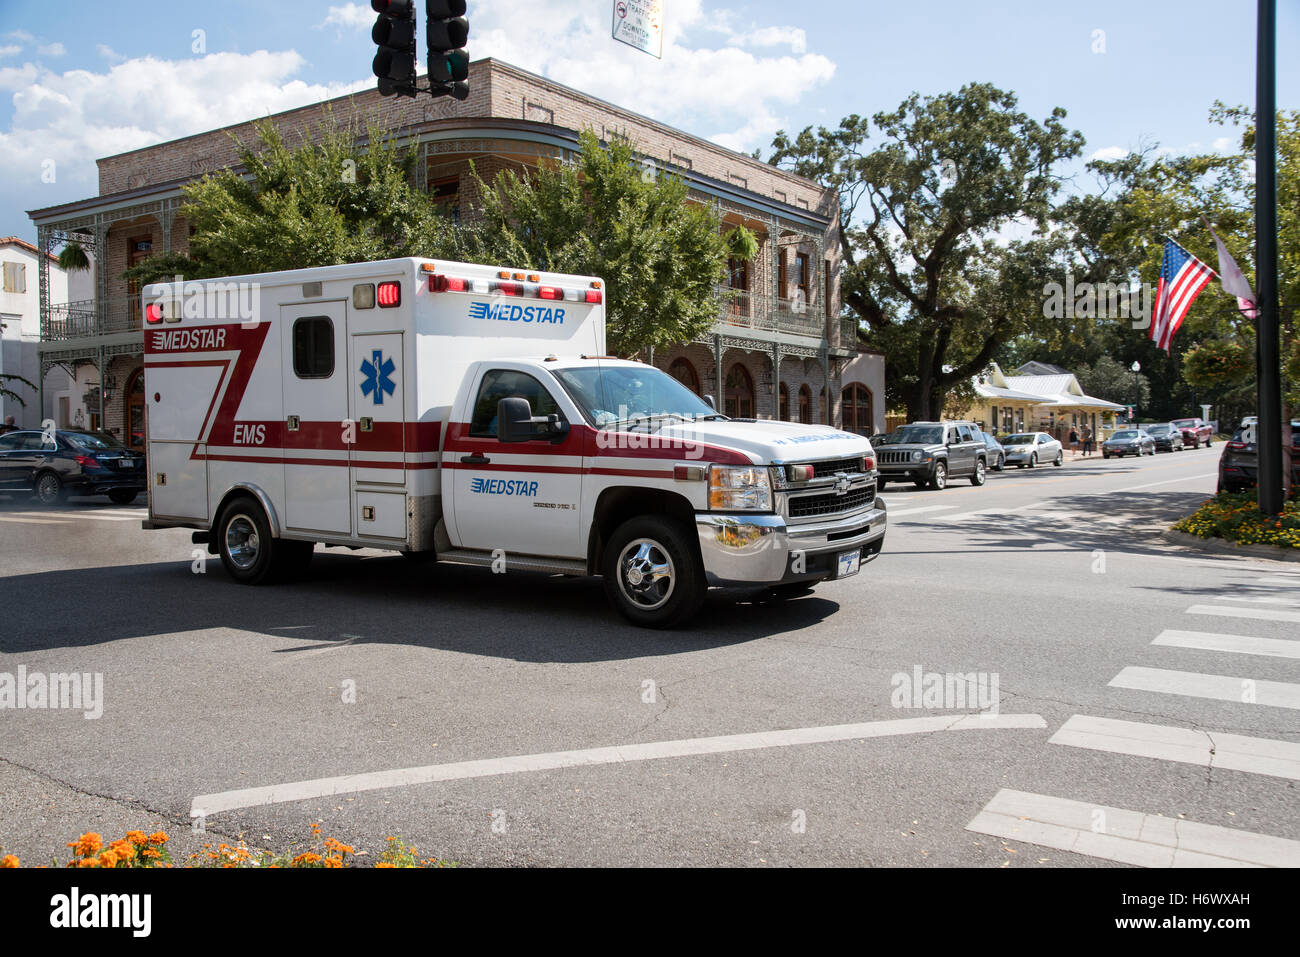 Downtown Fairhope Alabama USA  An ambulance on an emergency call traveling through the town center - Stock Image